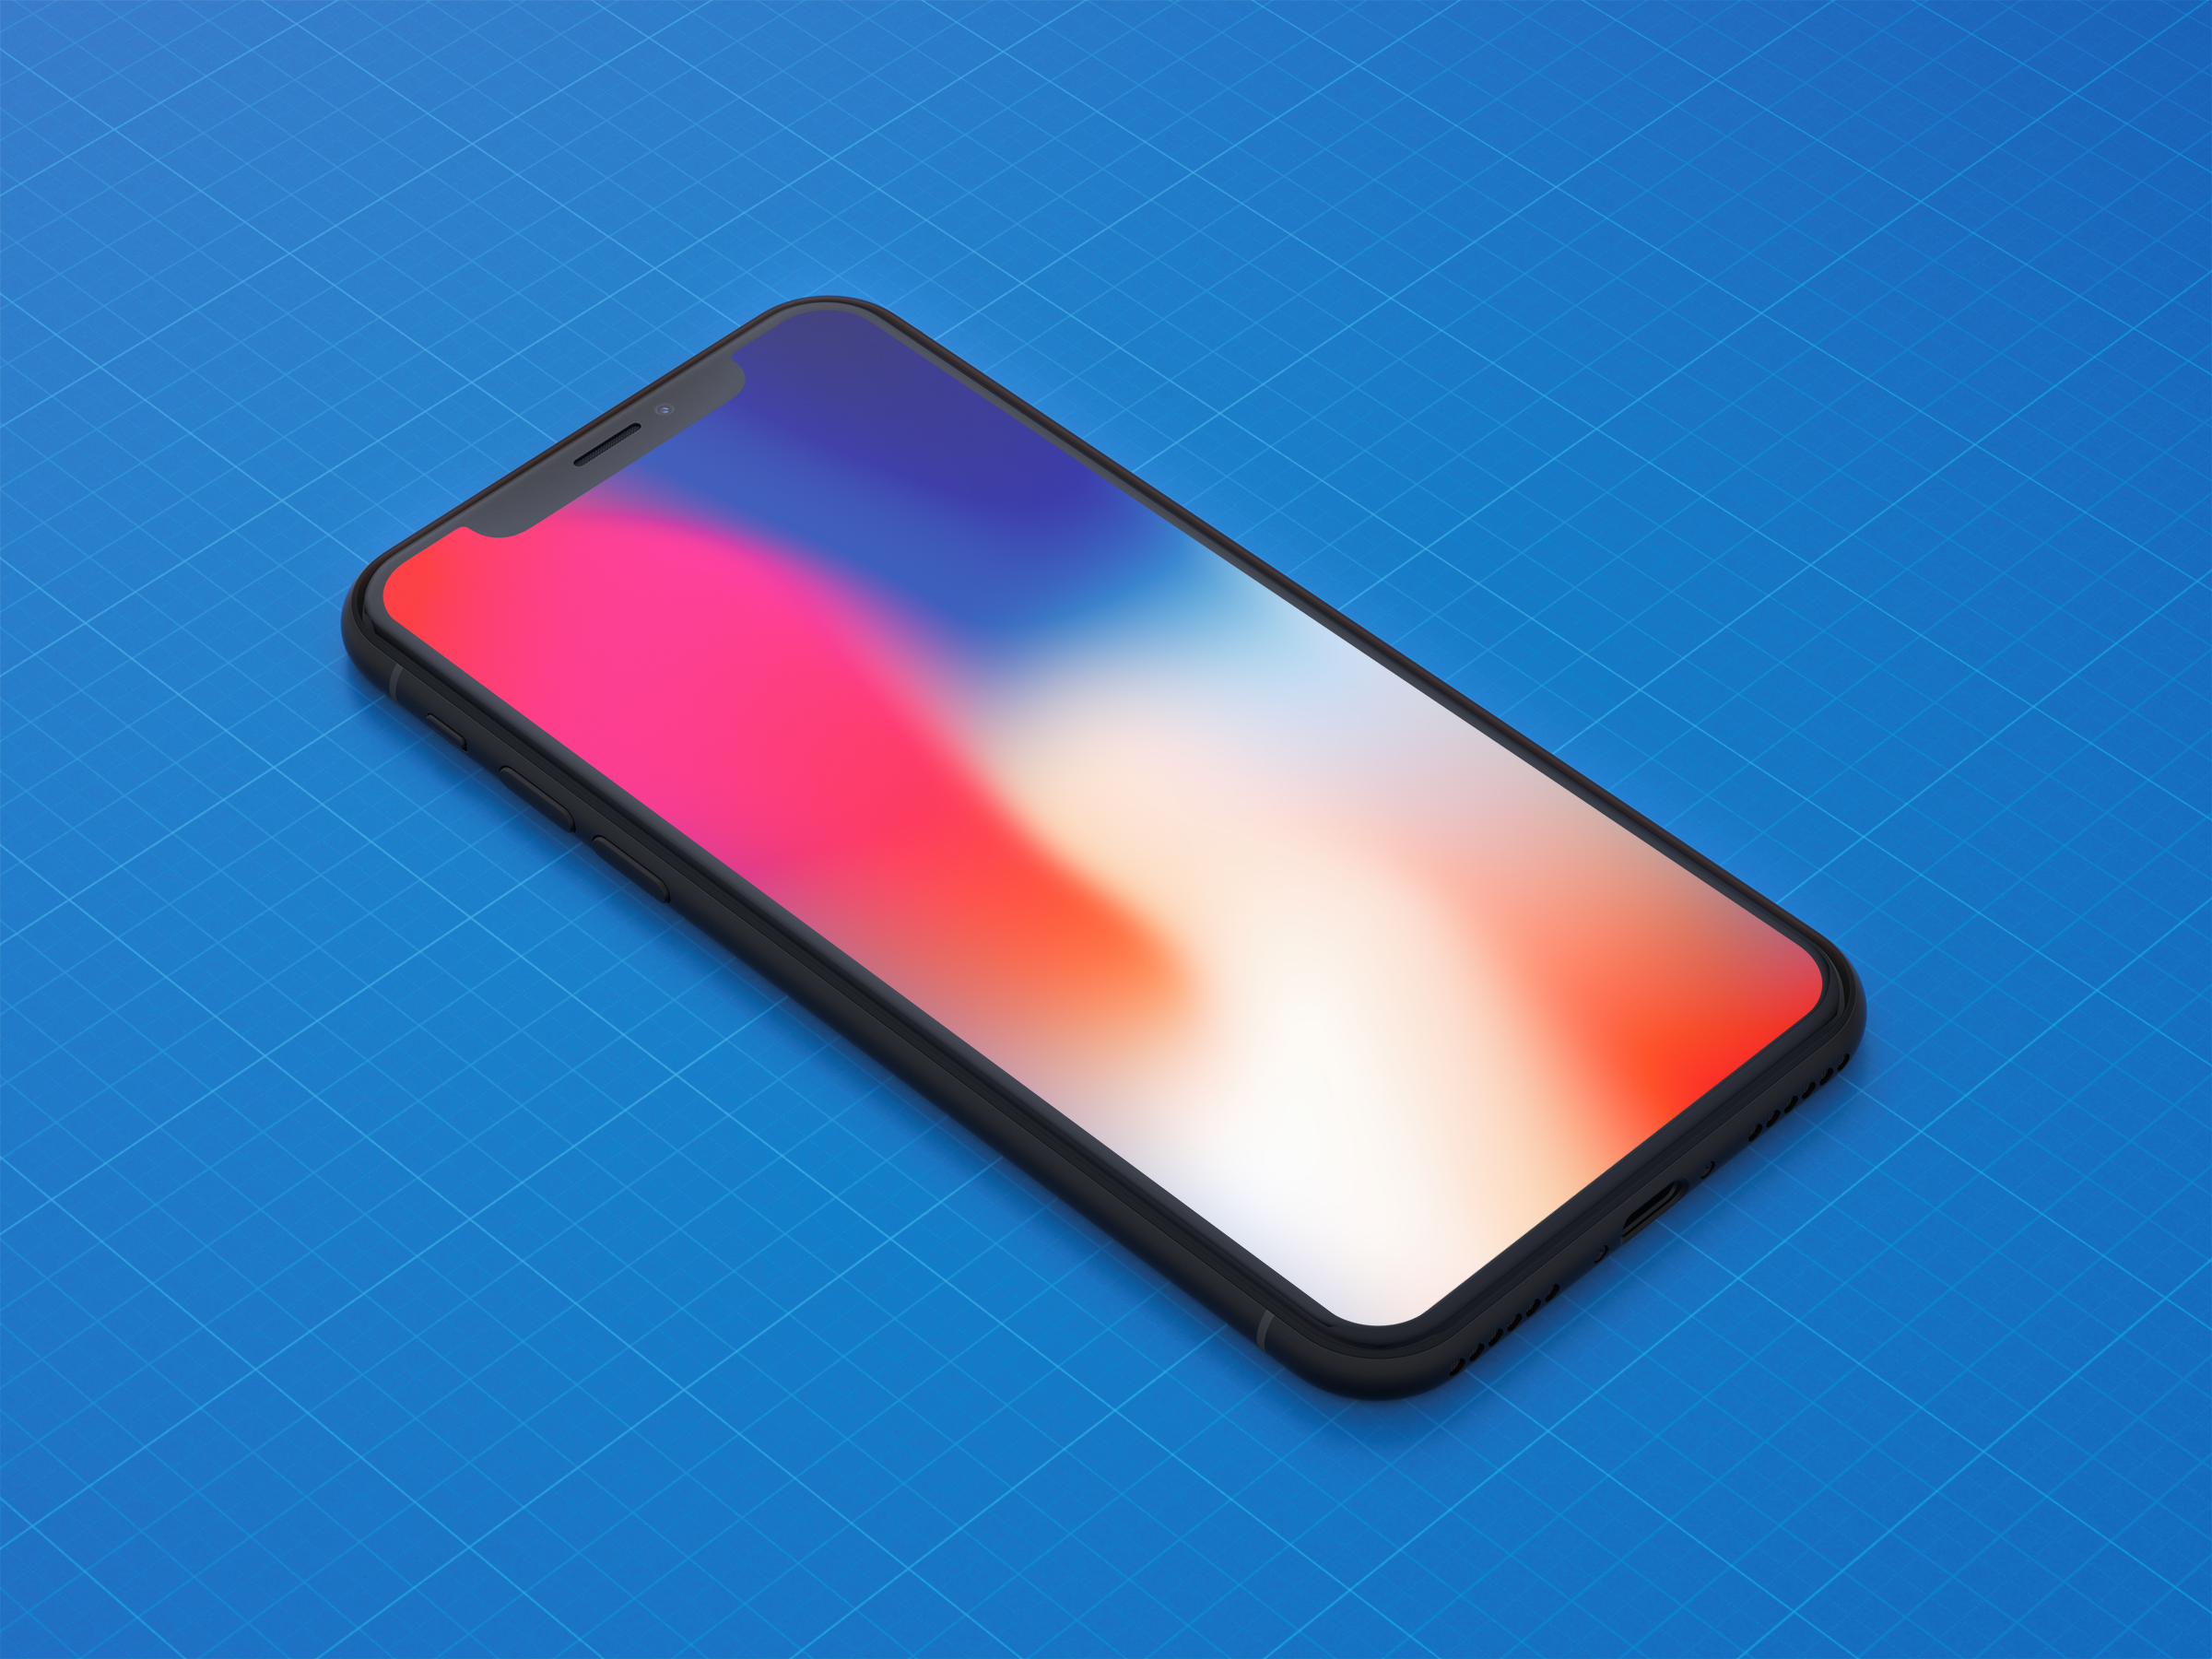 Download Pin By Ui8 On Mockups Iphone Free Iphone Mockup